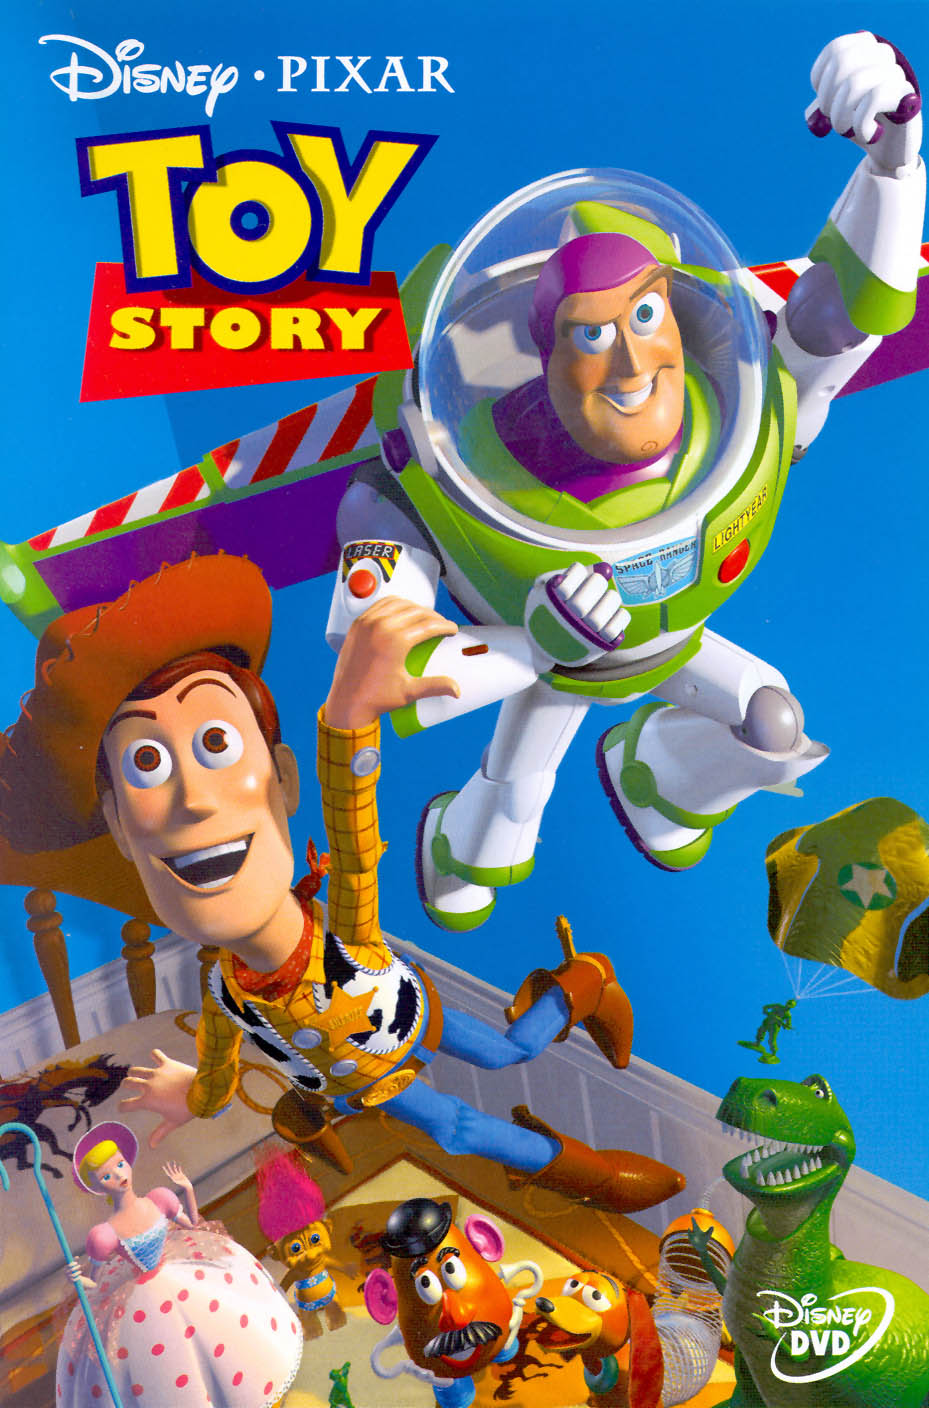 Toy Story, Pixar, Disney, Buzz Lightyear, Woody, Rex, Bo Peep, Slinky Dog